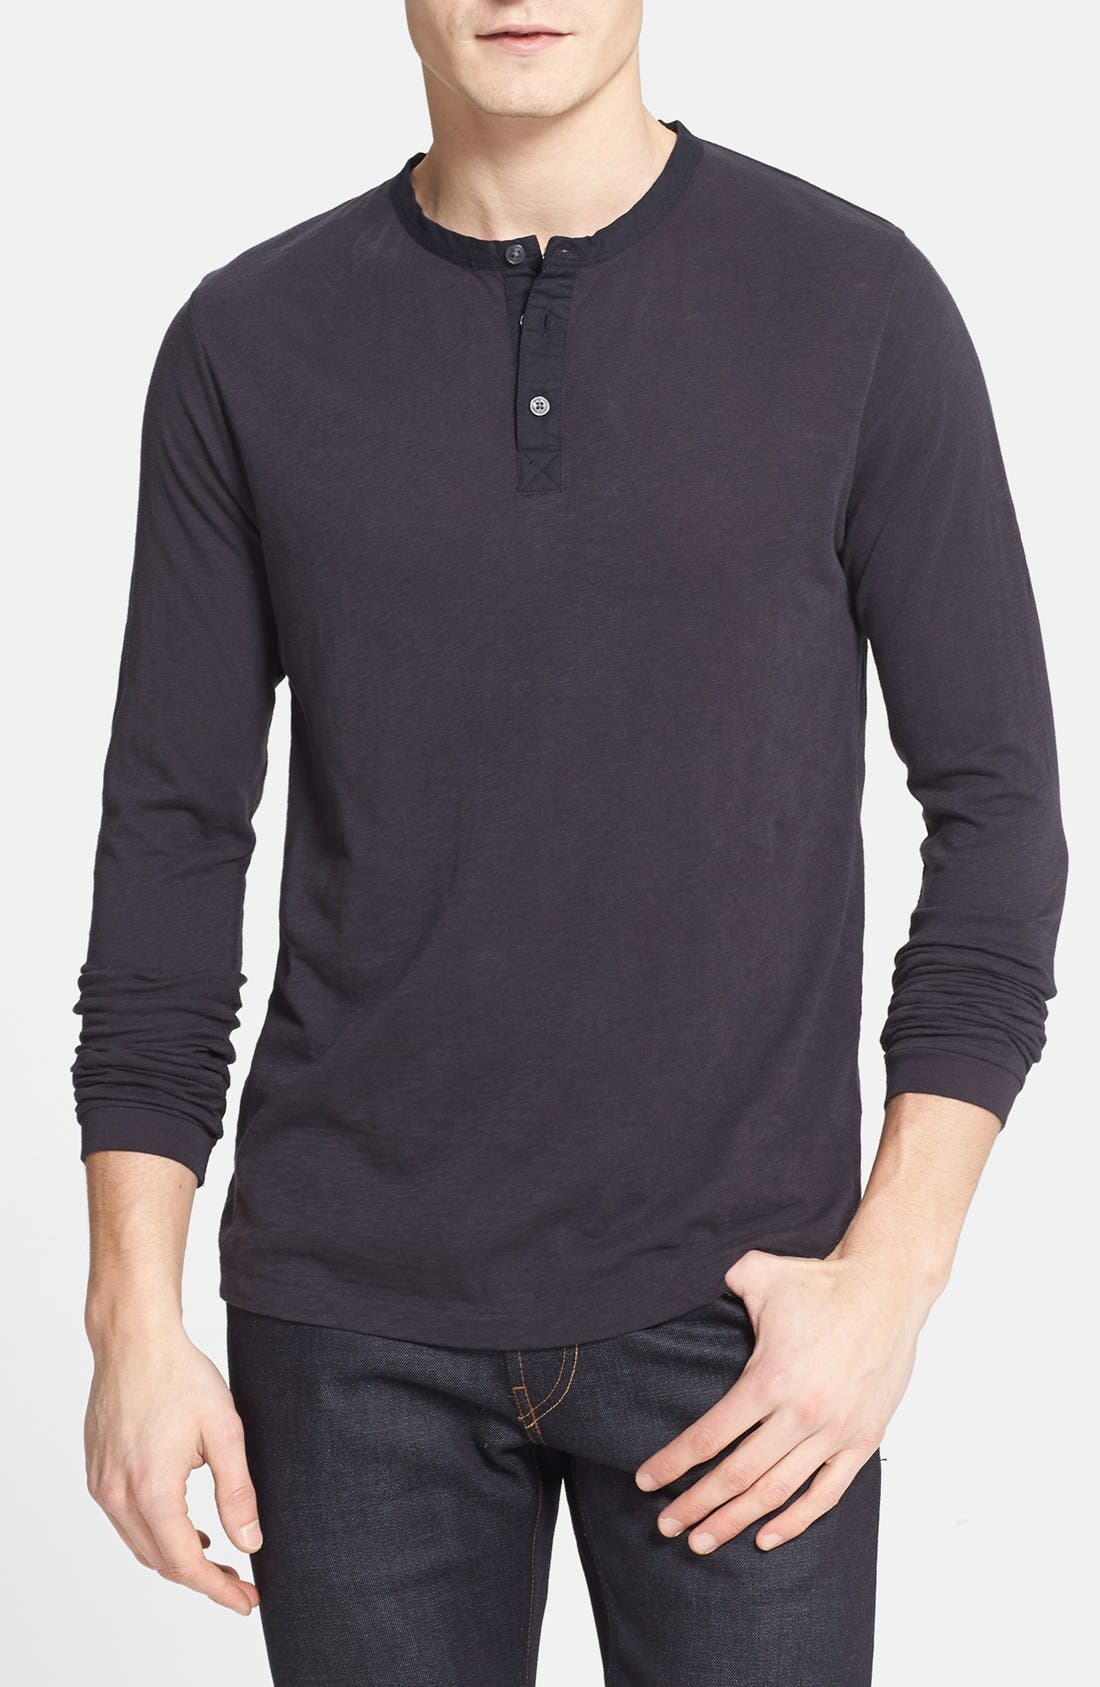 Alternate Image 1 Selected - French Connection Long Sleeve Slub Cotton Henley